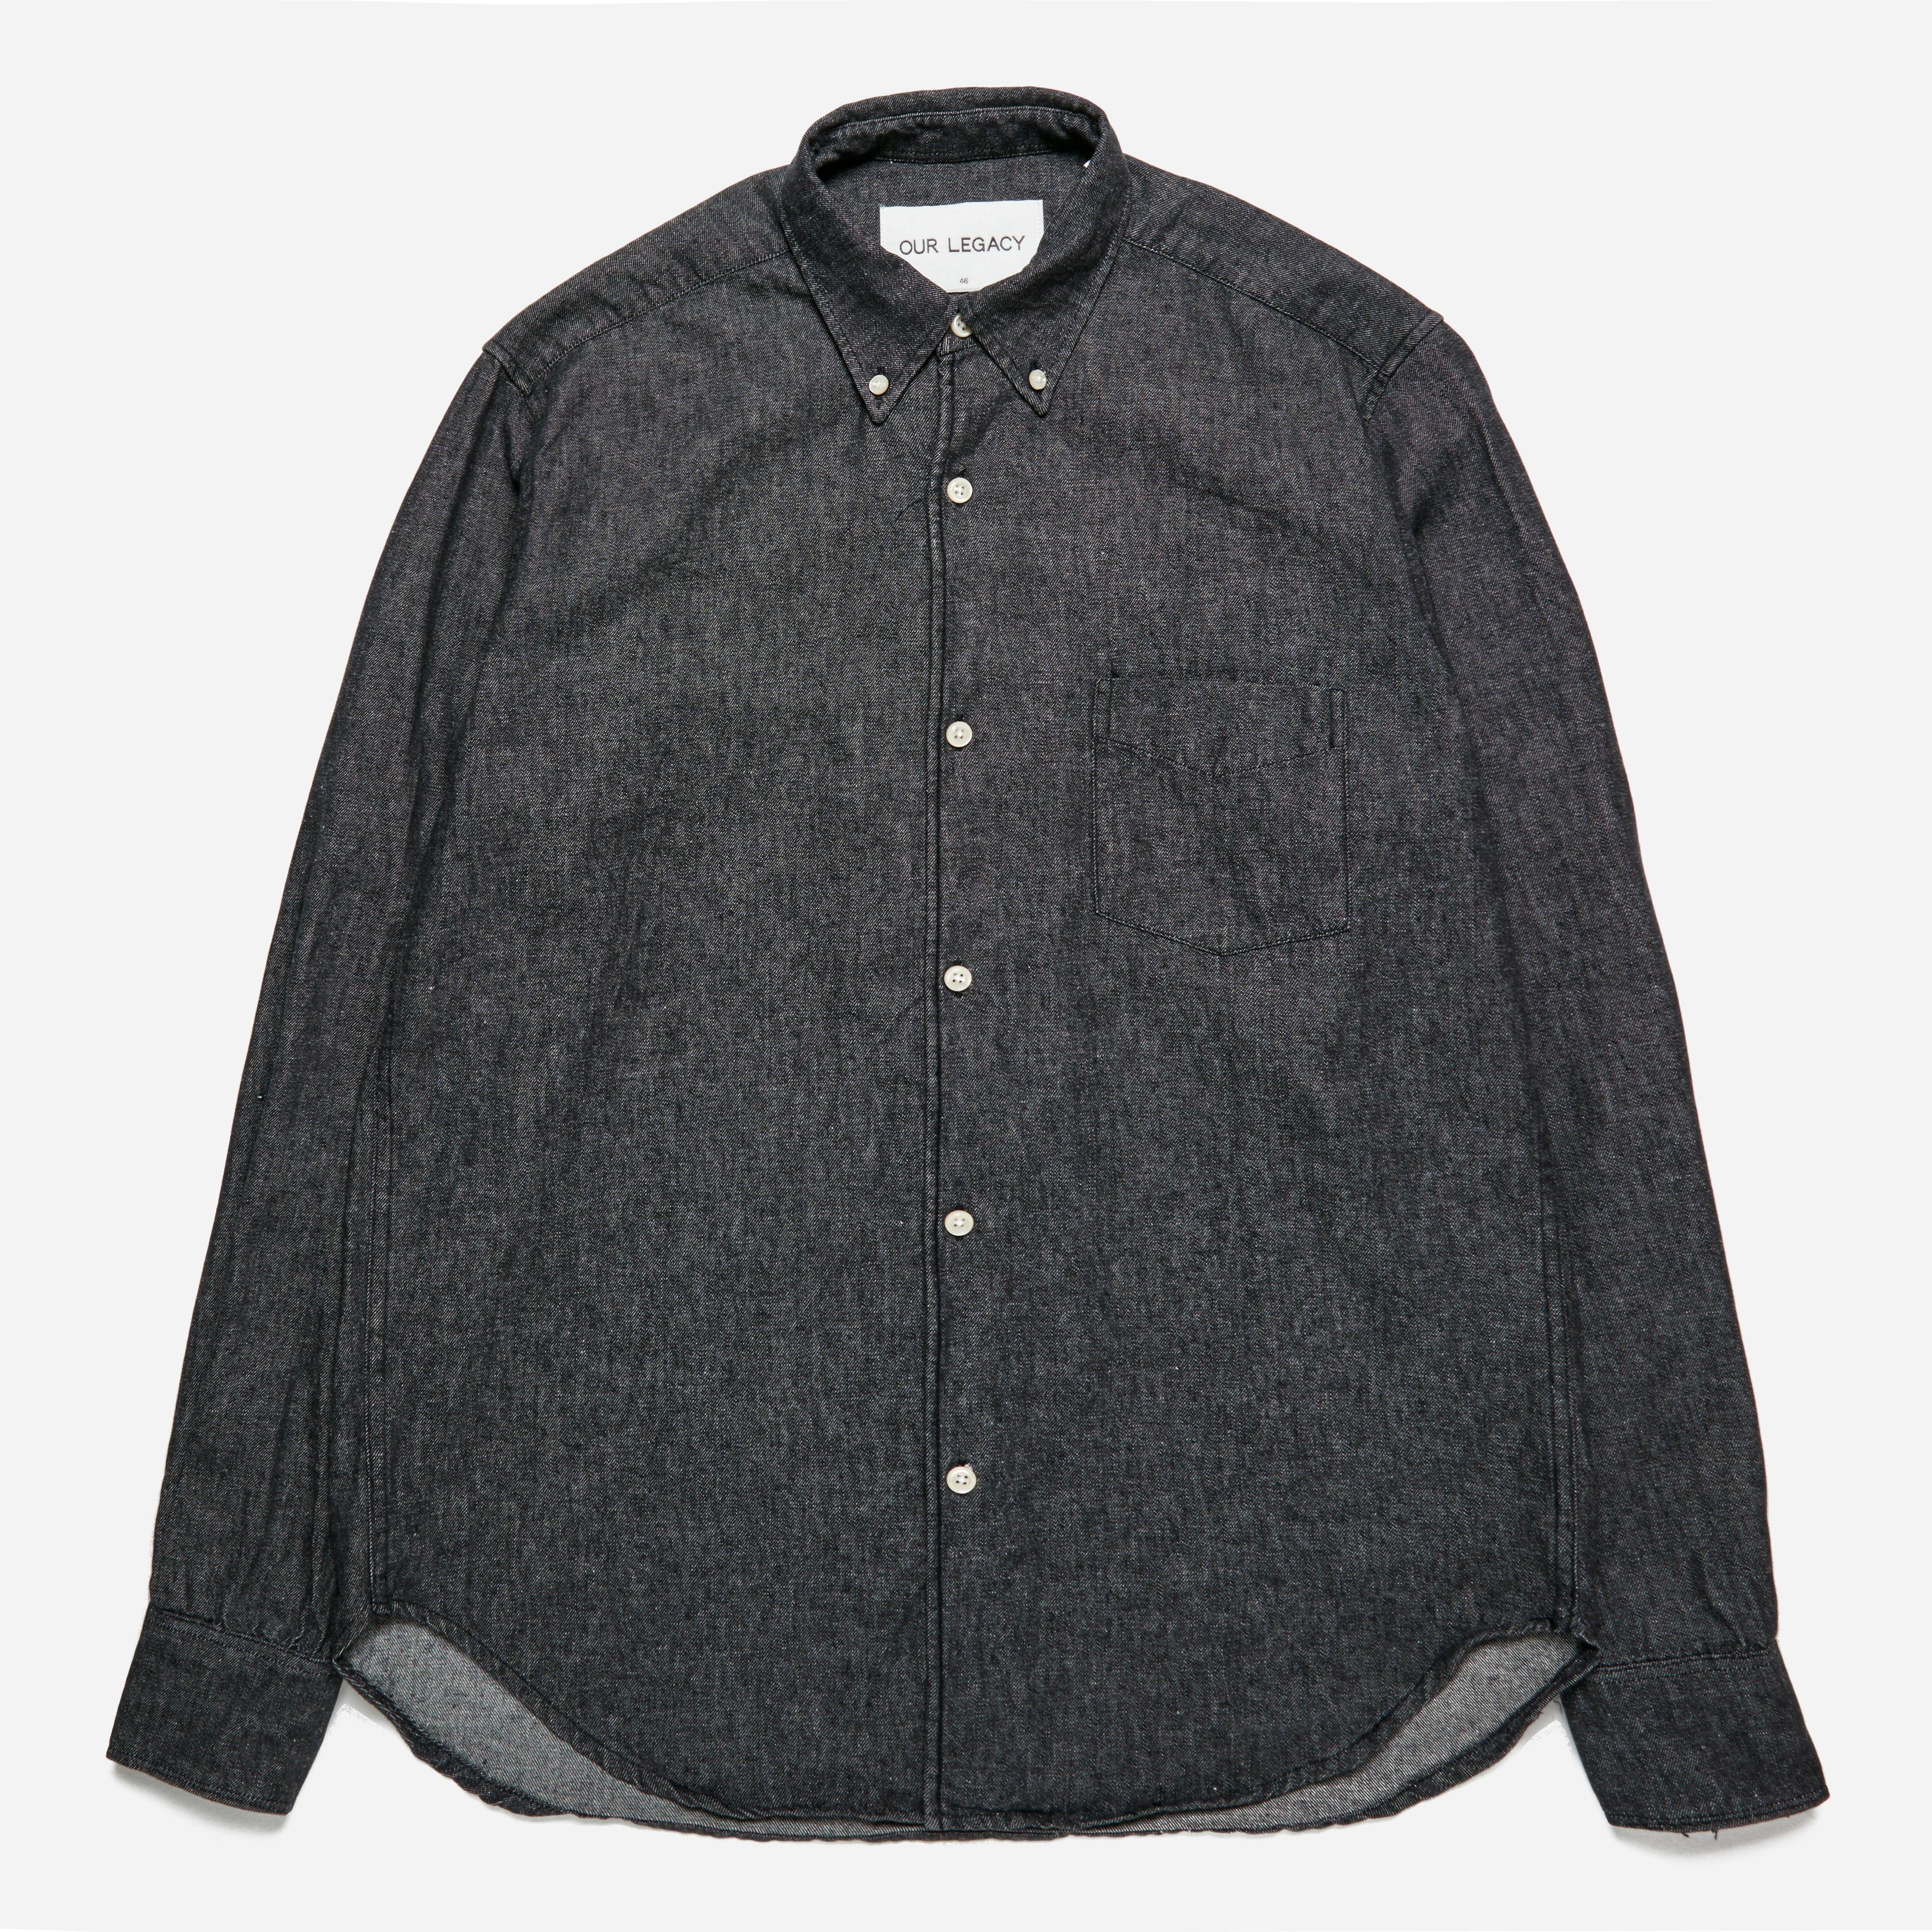 Our Legacy 1950's Button Down Shirt